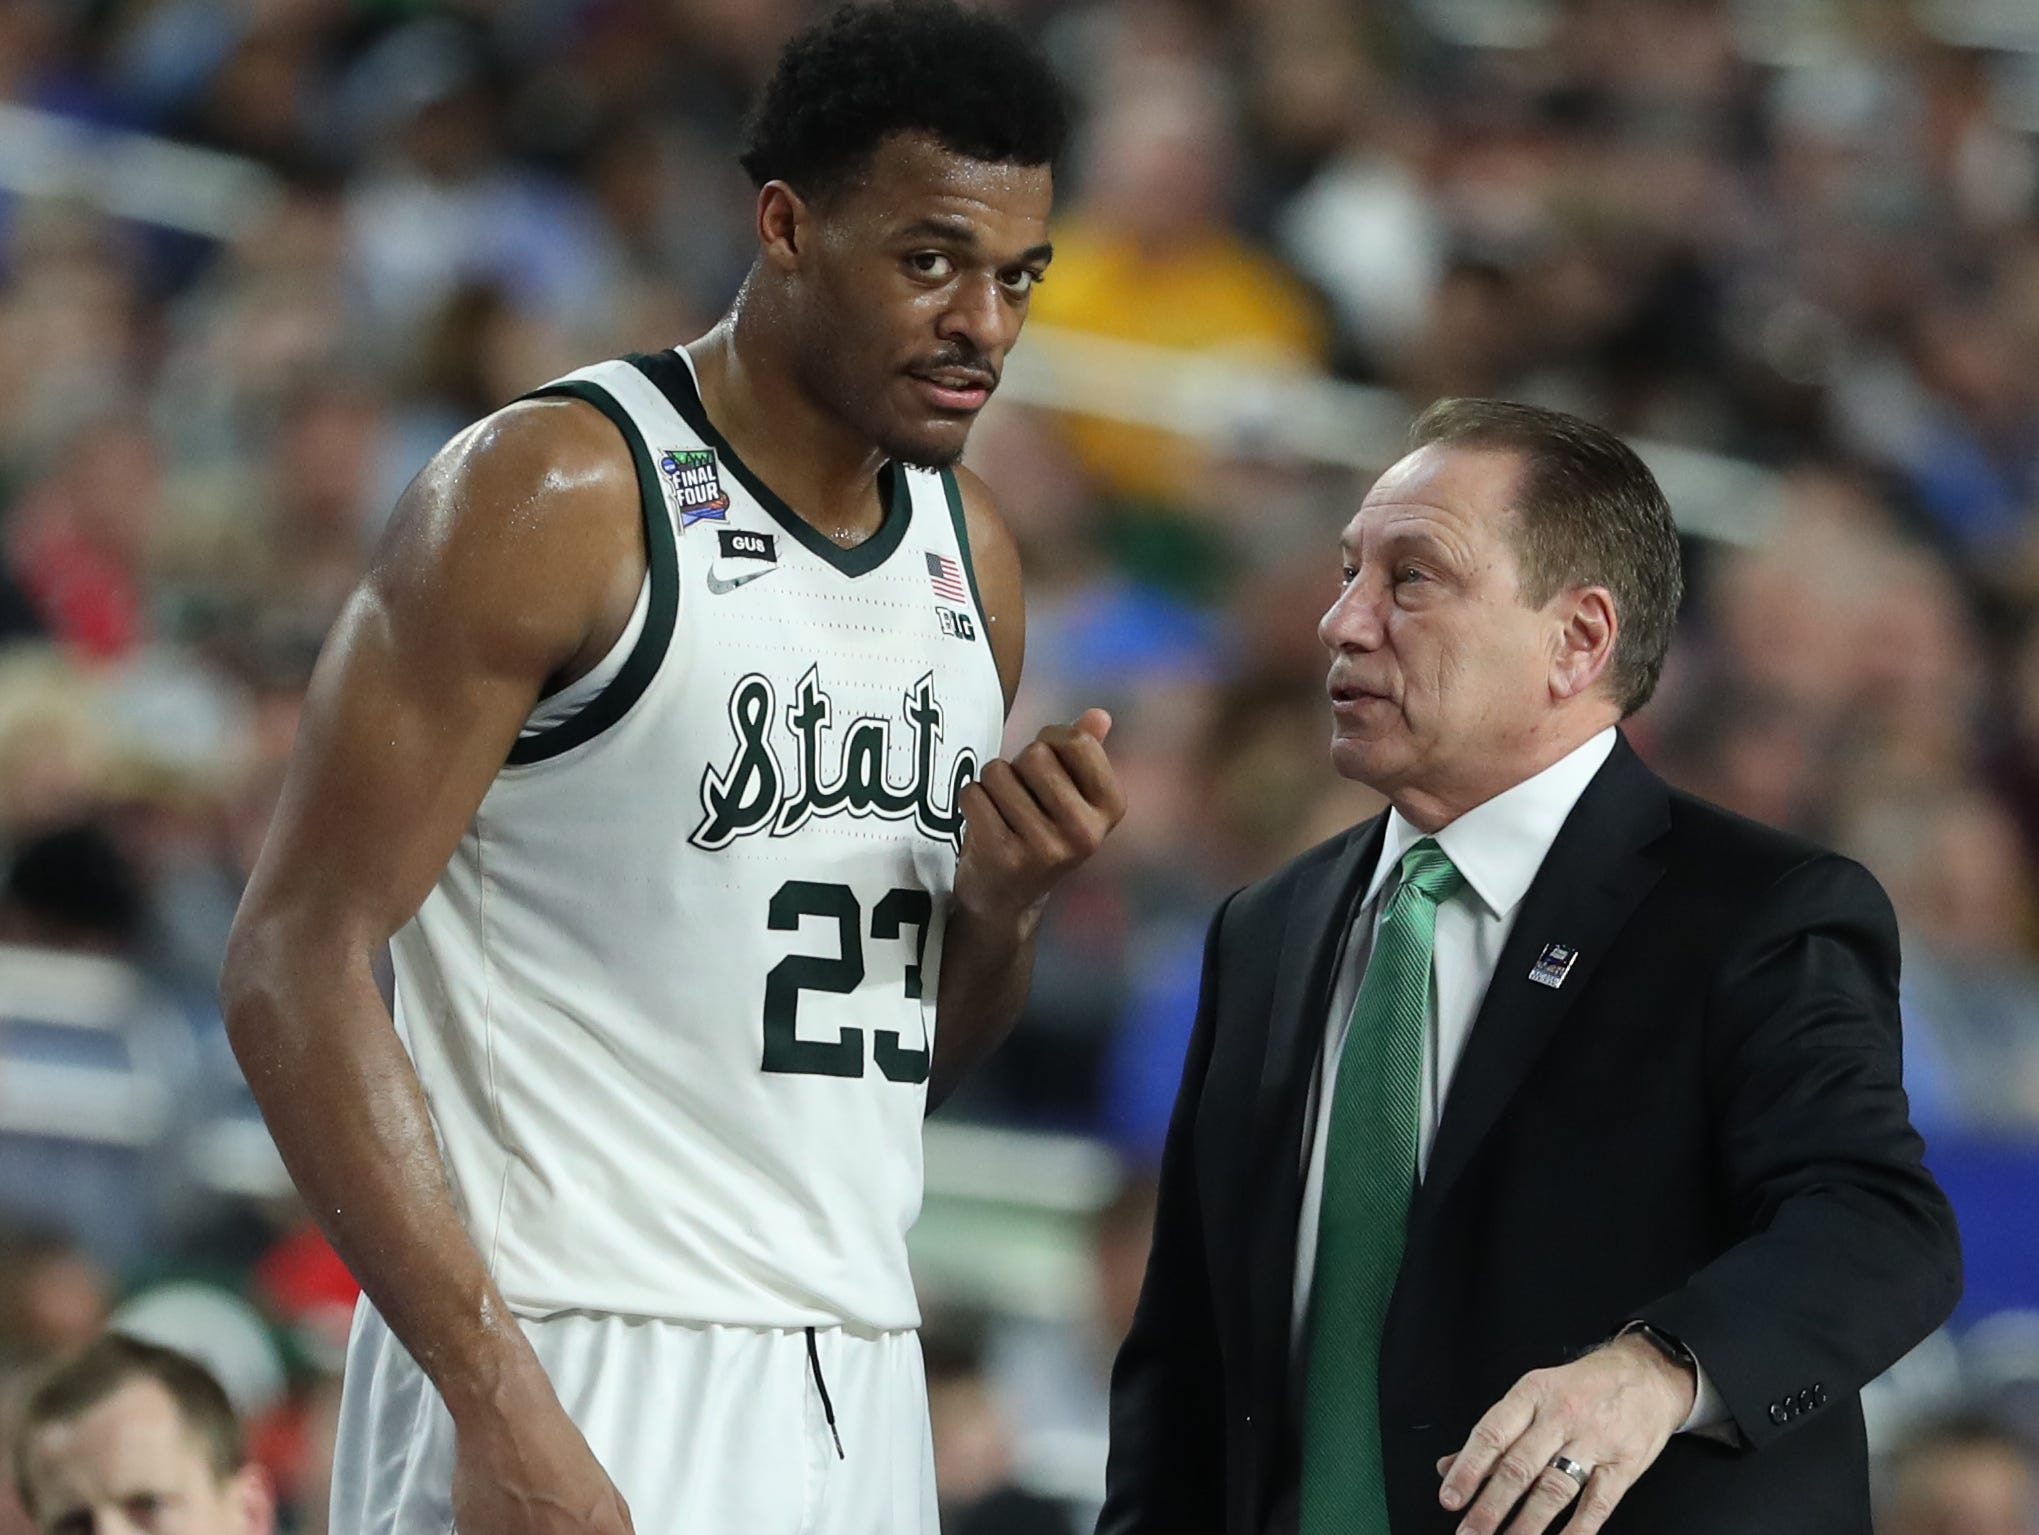 Michigan State forward Xavier Tillman (23) speaks with head coach Tom Izzo  during a break in the action in the first half of their Final Four game against Texas Tech at U.S. Bank Stadium in Minneapolis, Minnesota on Saturday, April 06, 2019.